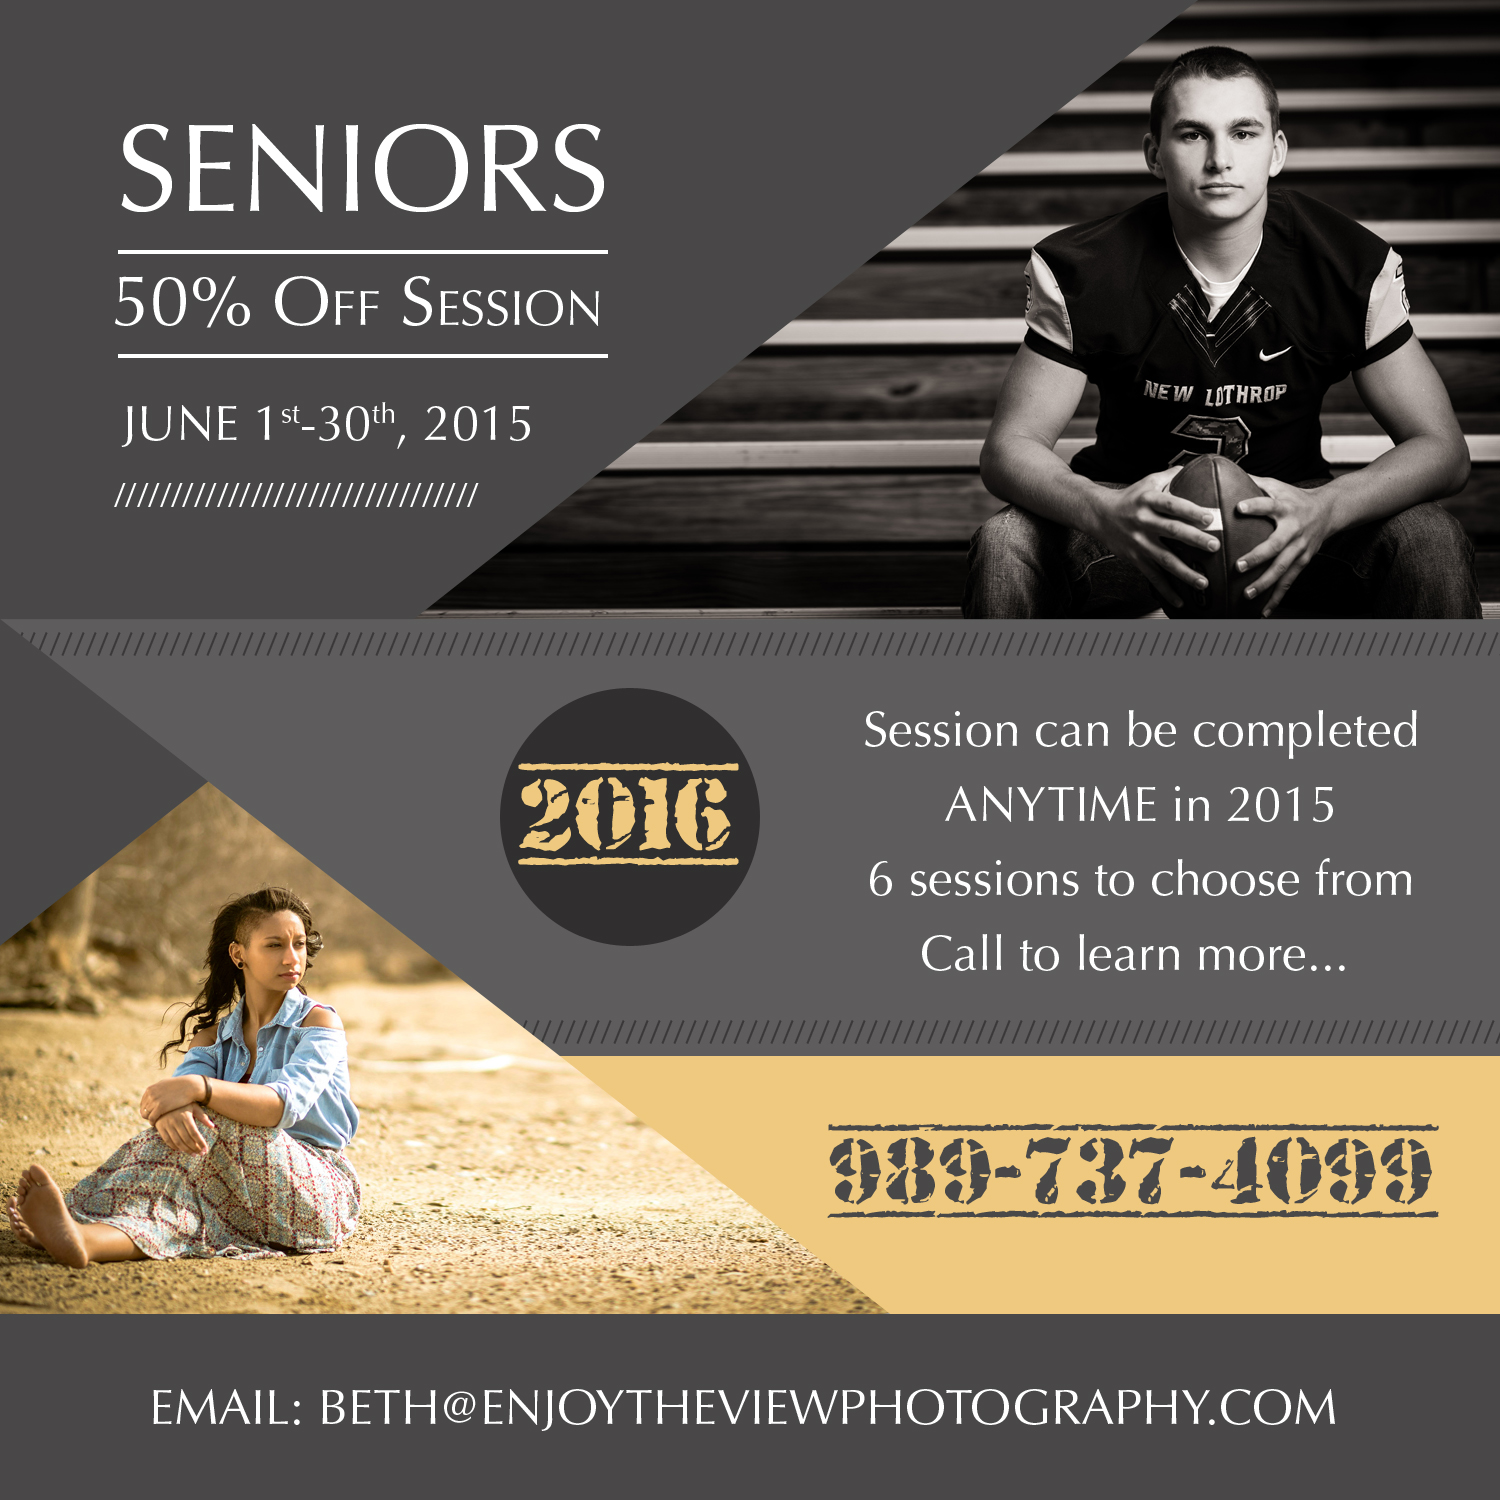 Senior Special 50% Off {Clio Senior Photographers}